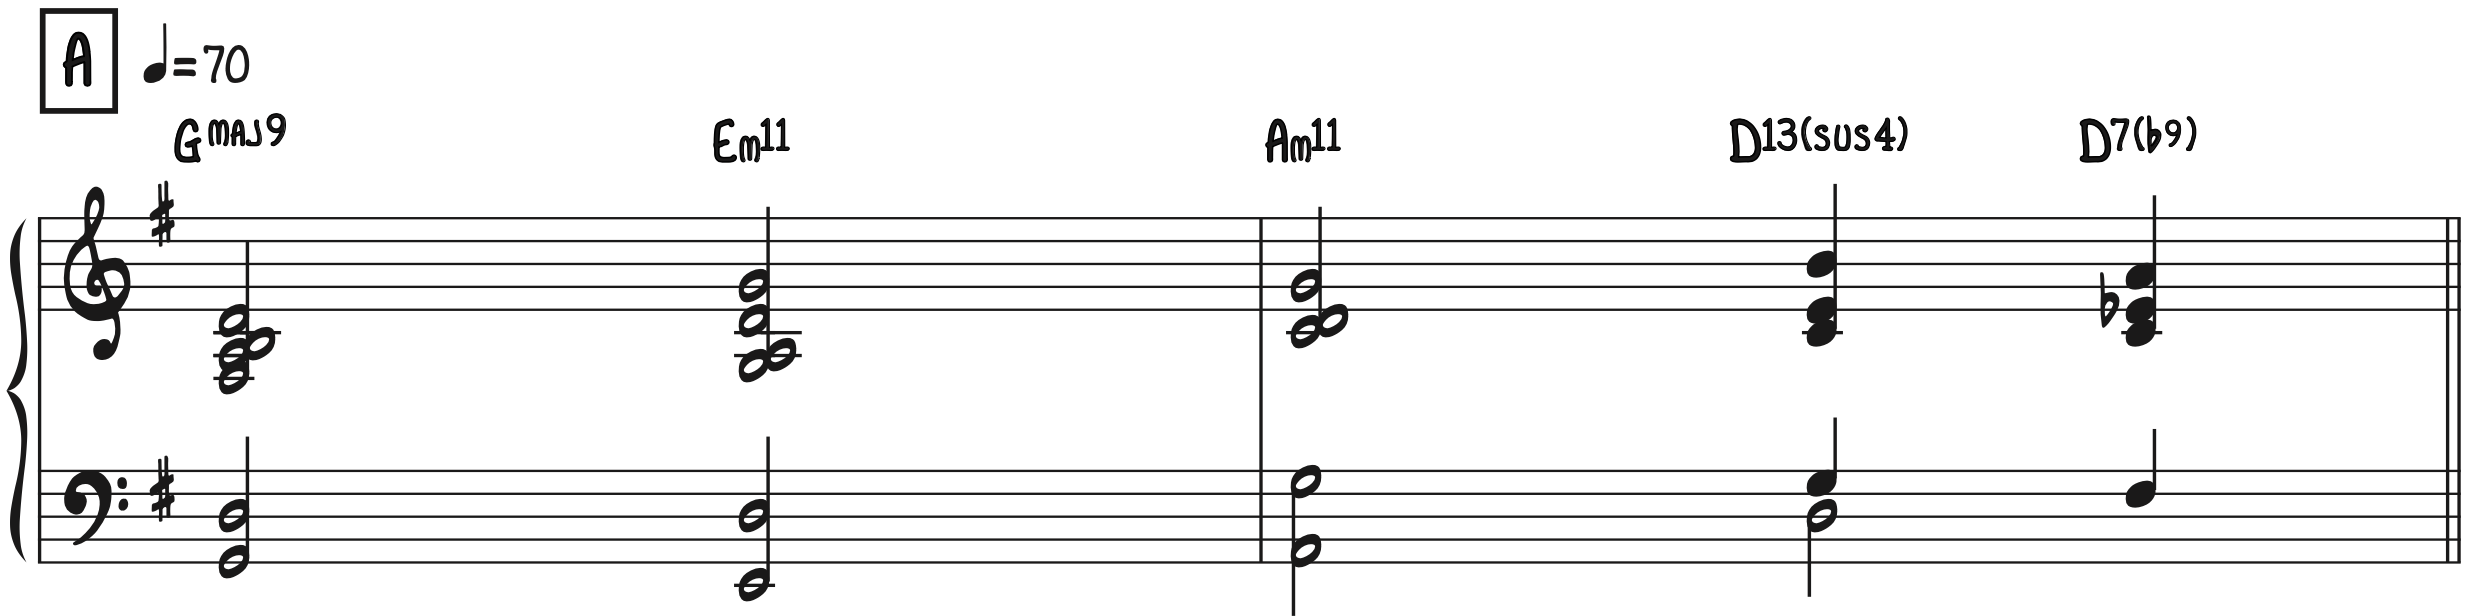 Turnaround Progression in G Have Yourself A Merry Little Christmas Jazz Piano Accompaniment